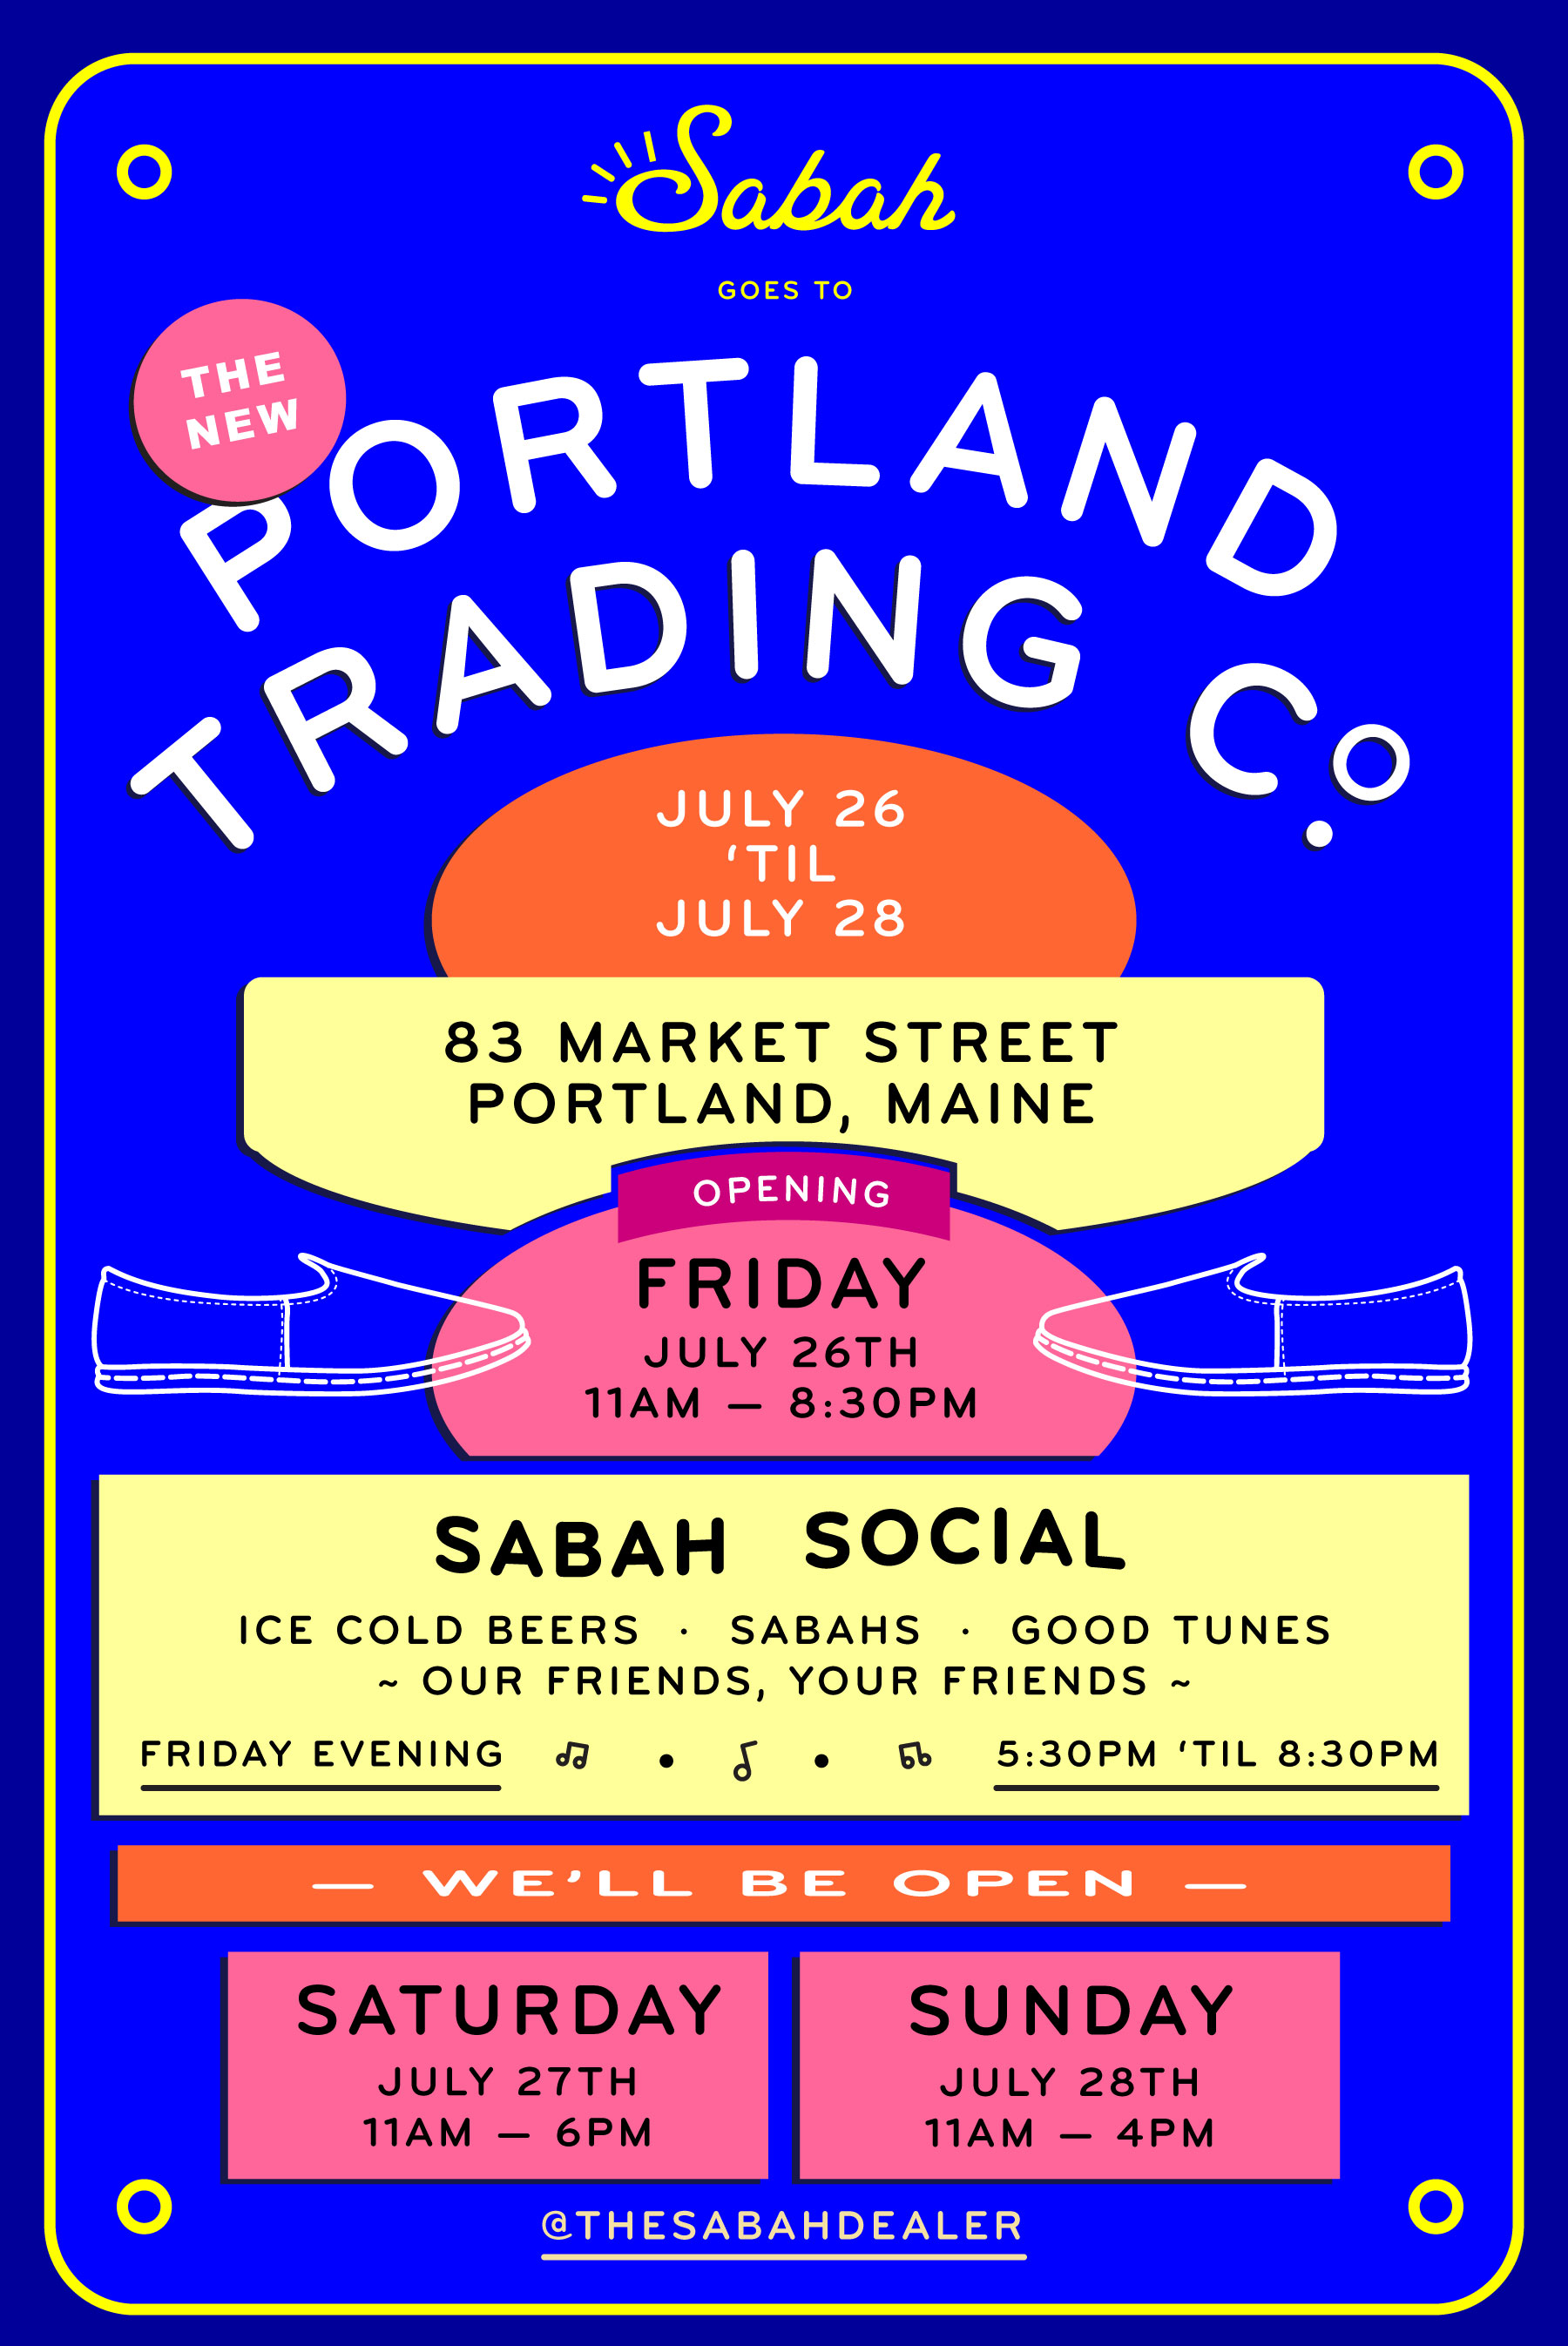 Sabah portland maine 062719 final newsletter